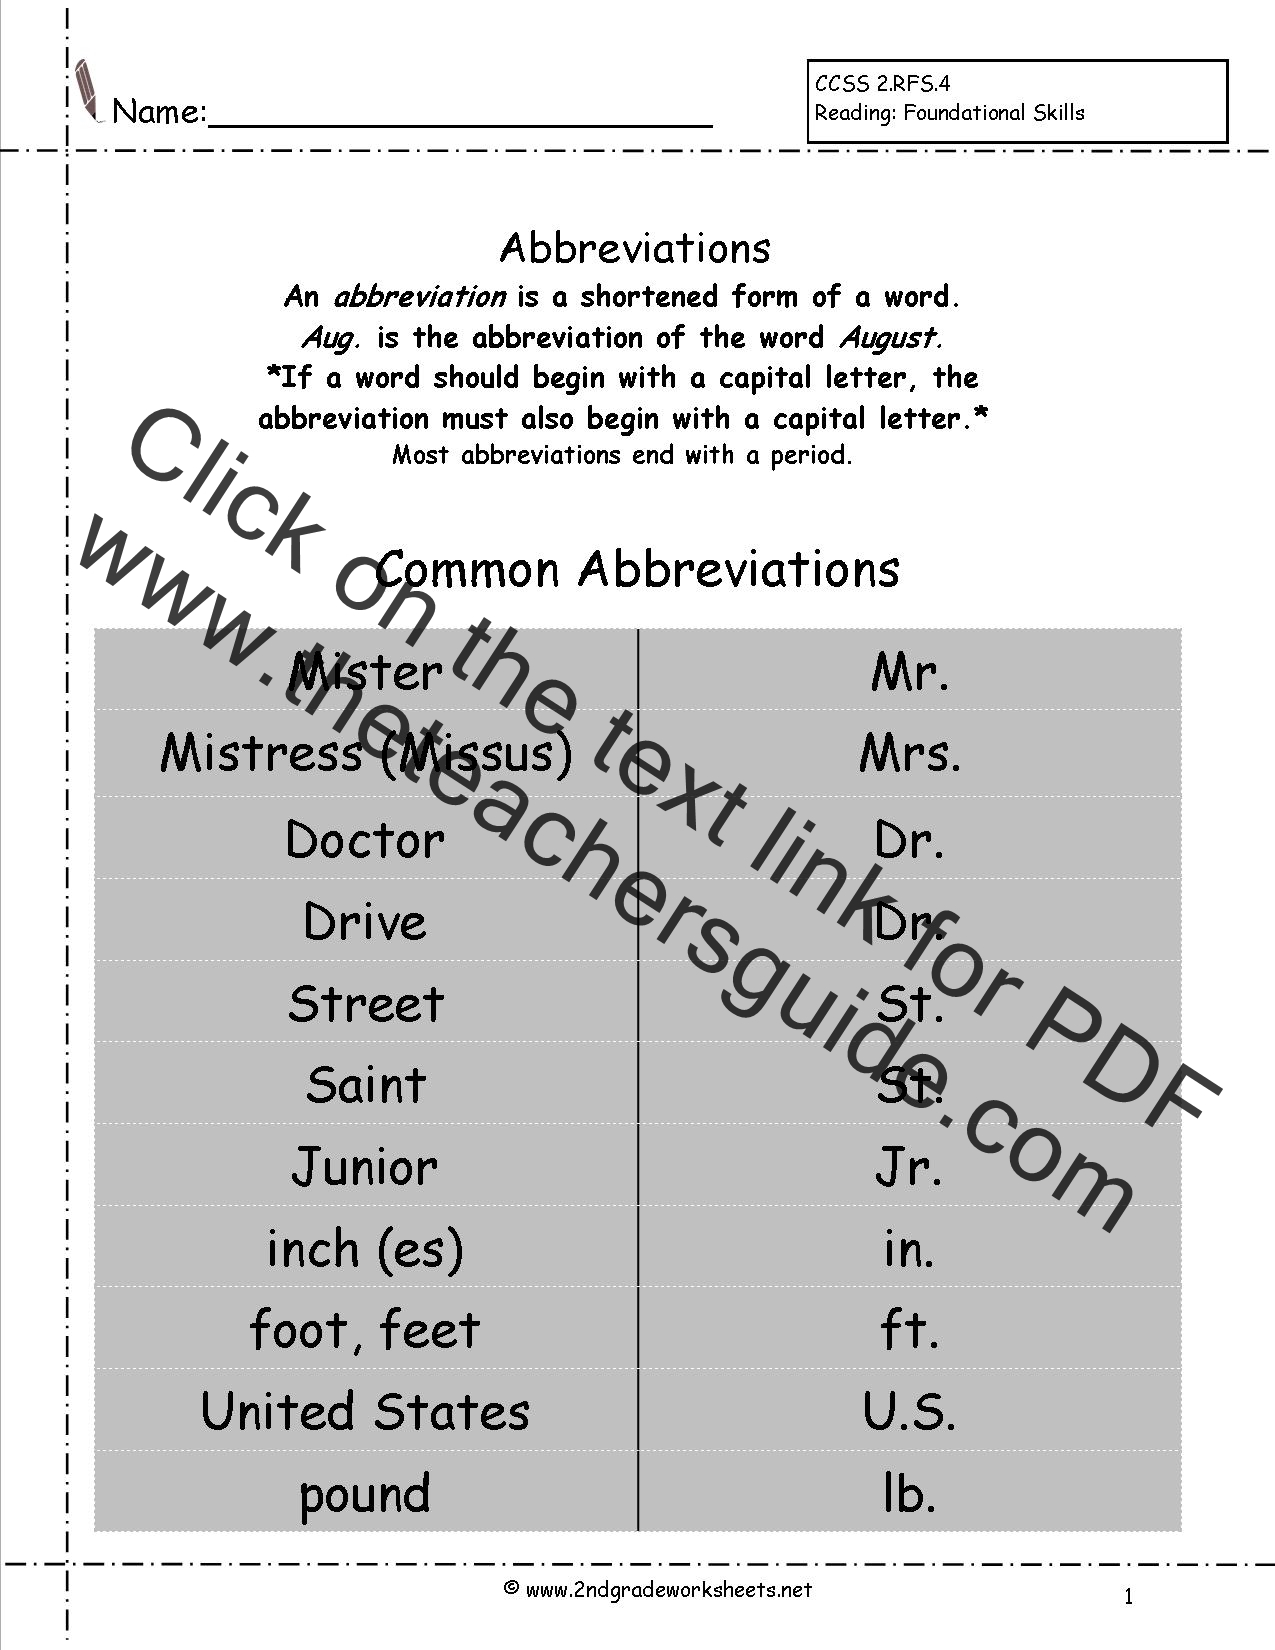 Worksheets 2nd Grade Language Arts Worksheets free languagegrammar worksheets and printouts abbreviations worksheets